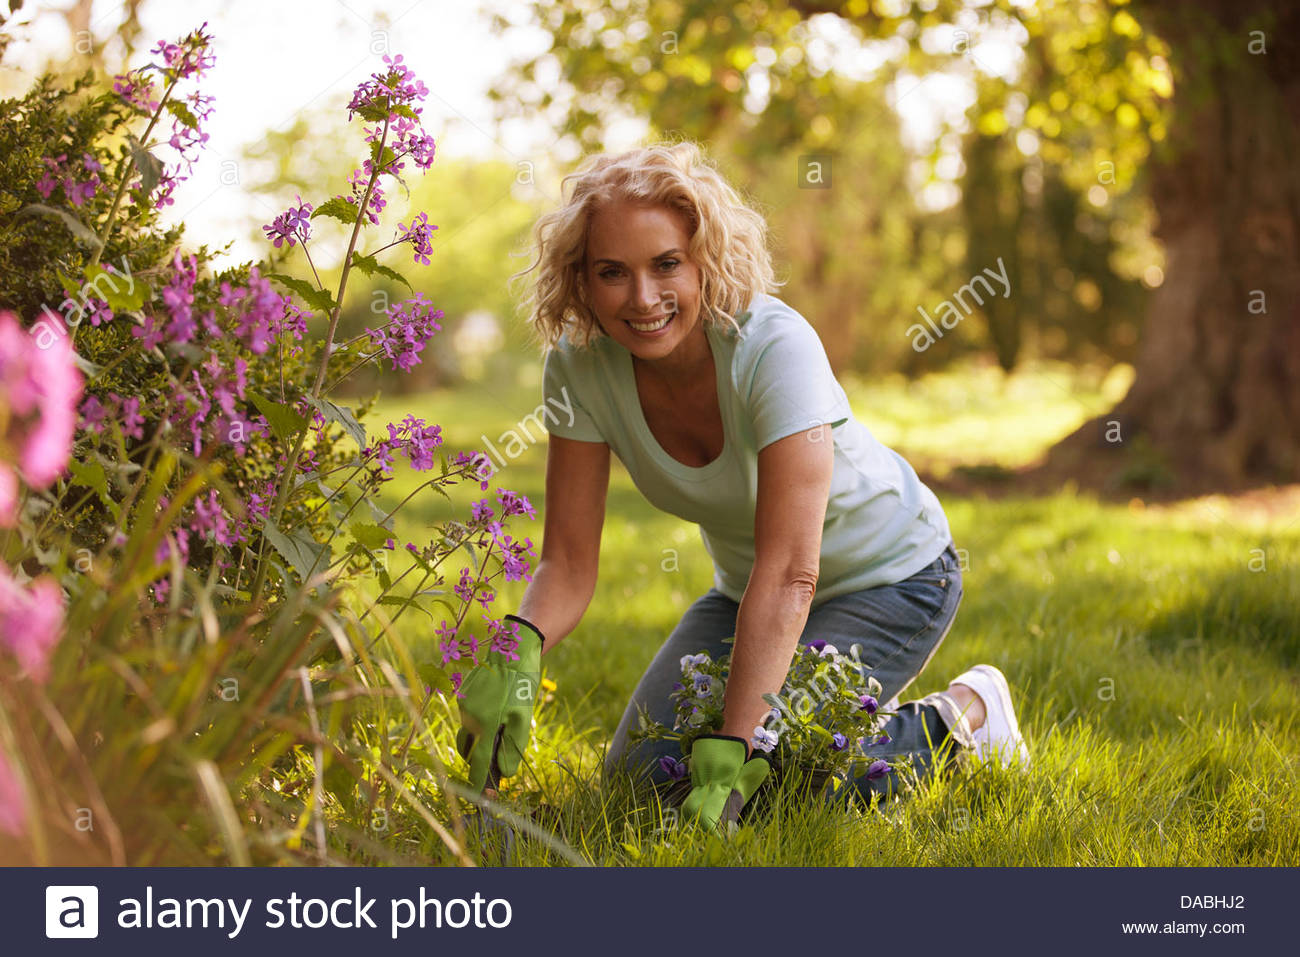 A mature woman gardening - Stock Image